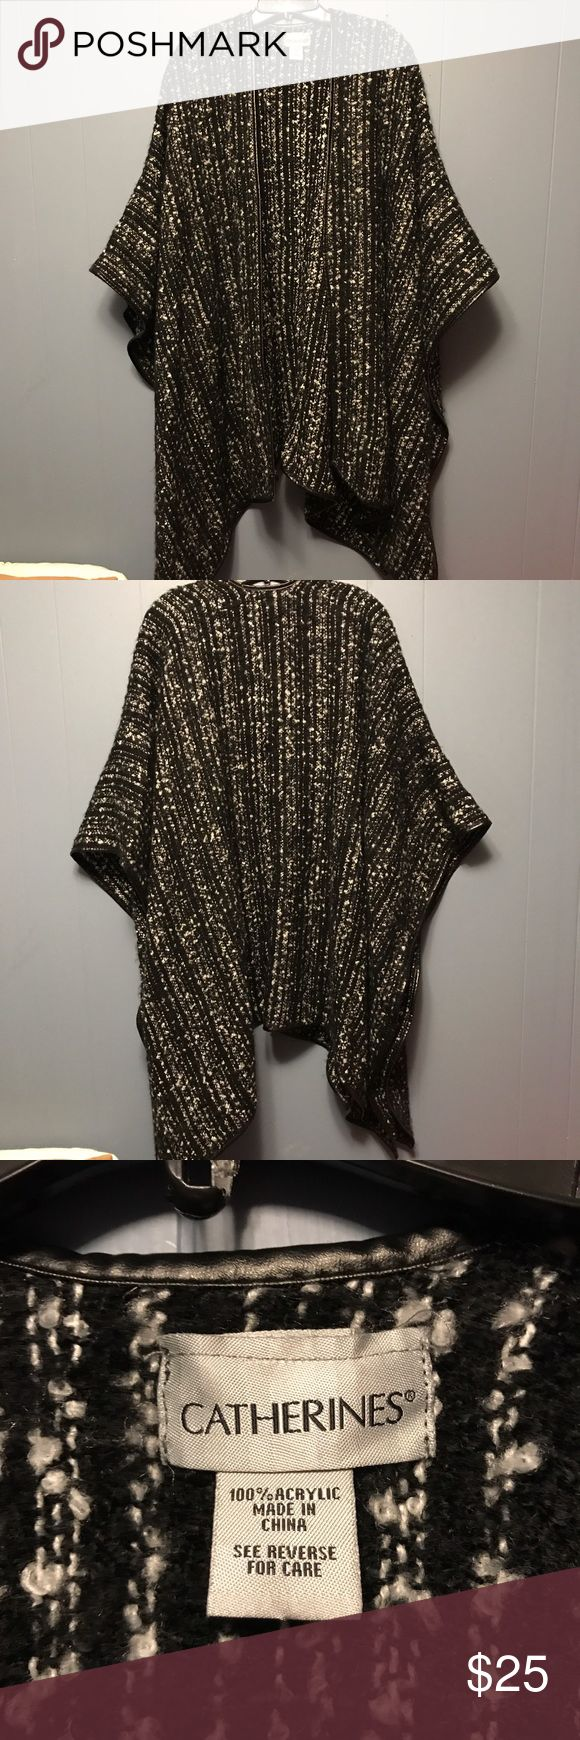 Catherines Blanket Wrap Blanket wrap/shawl. Black and white. One size. Doesn't have arm holes in it. Feel free to make an offer. Catherines Sweaters Shrugs & Ponchos